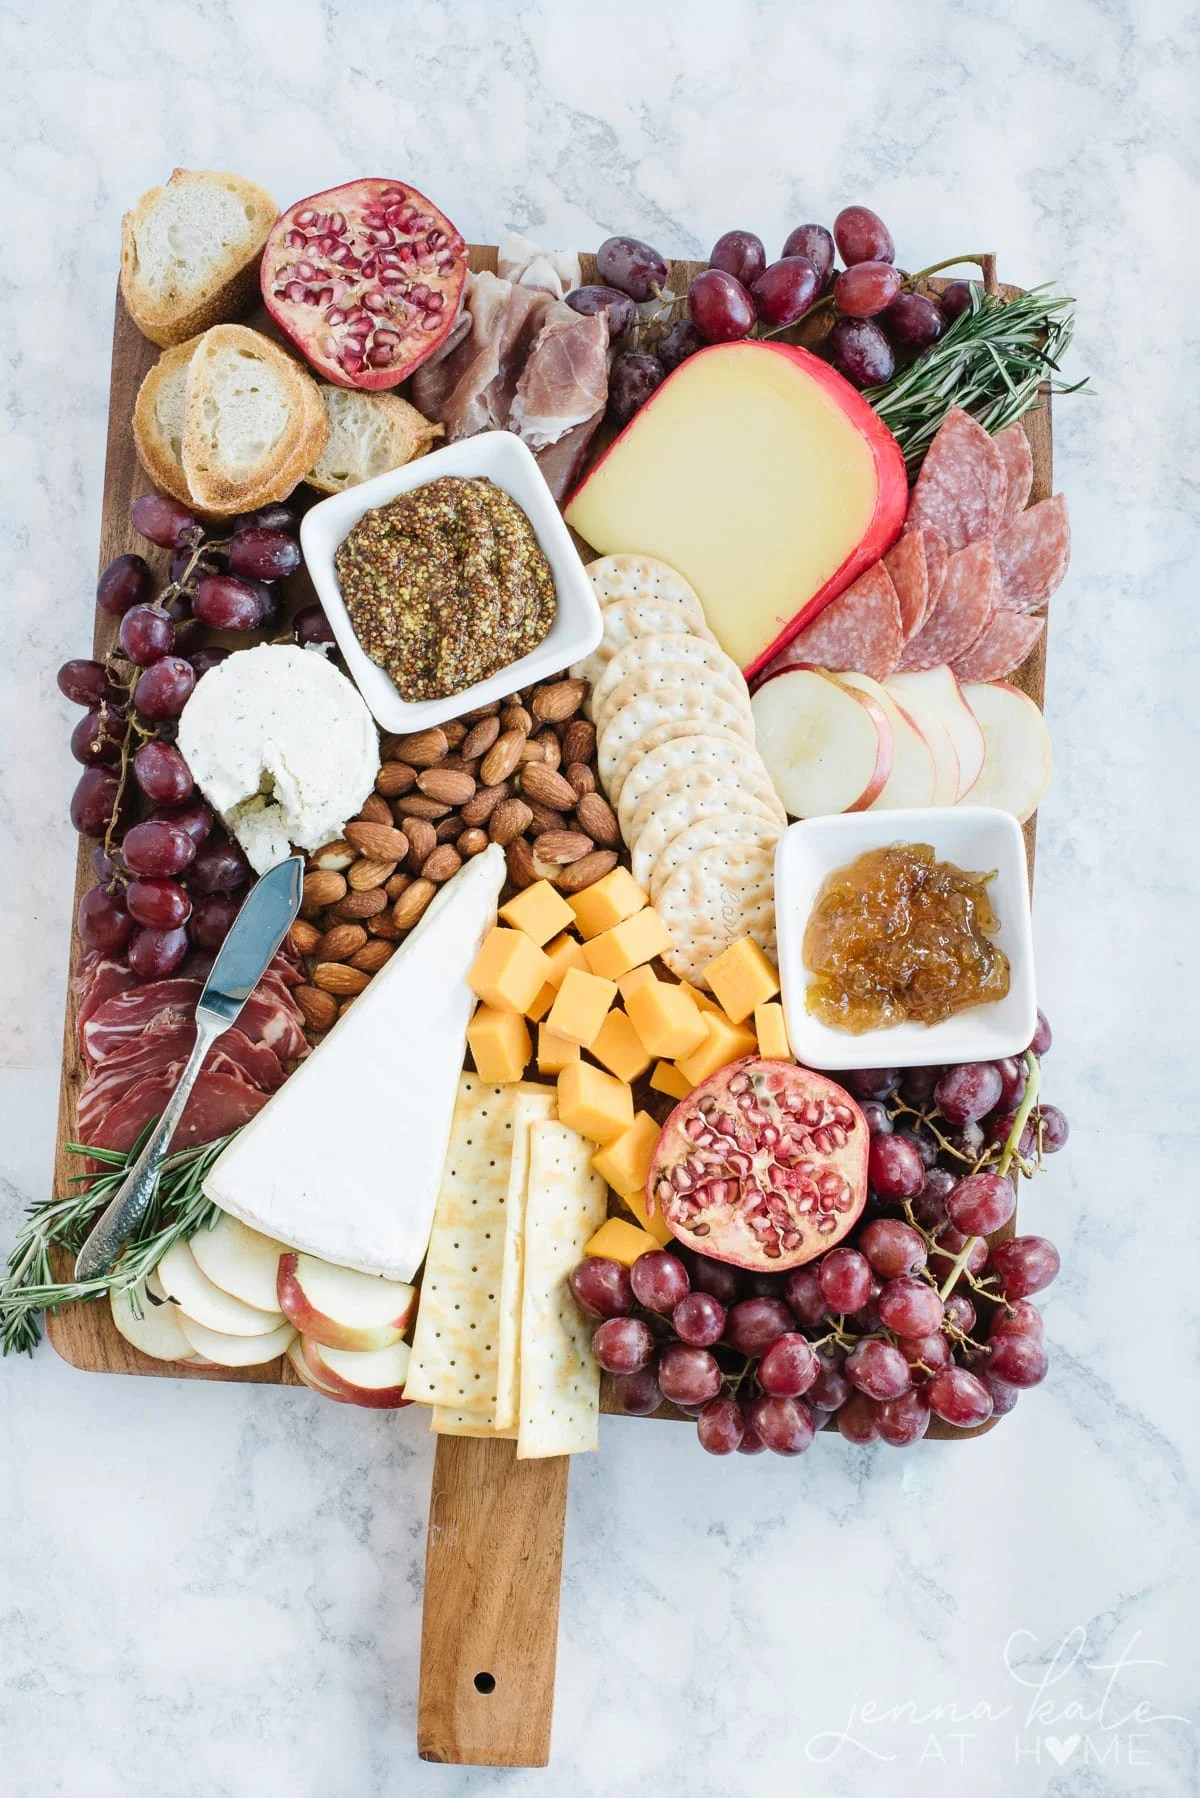 Charcuterie board for a wine tasting party filled with fruits, cheeses, meats and crackers